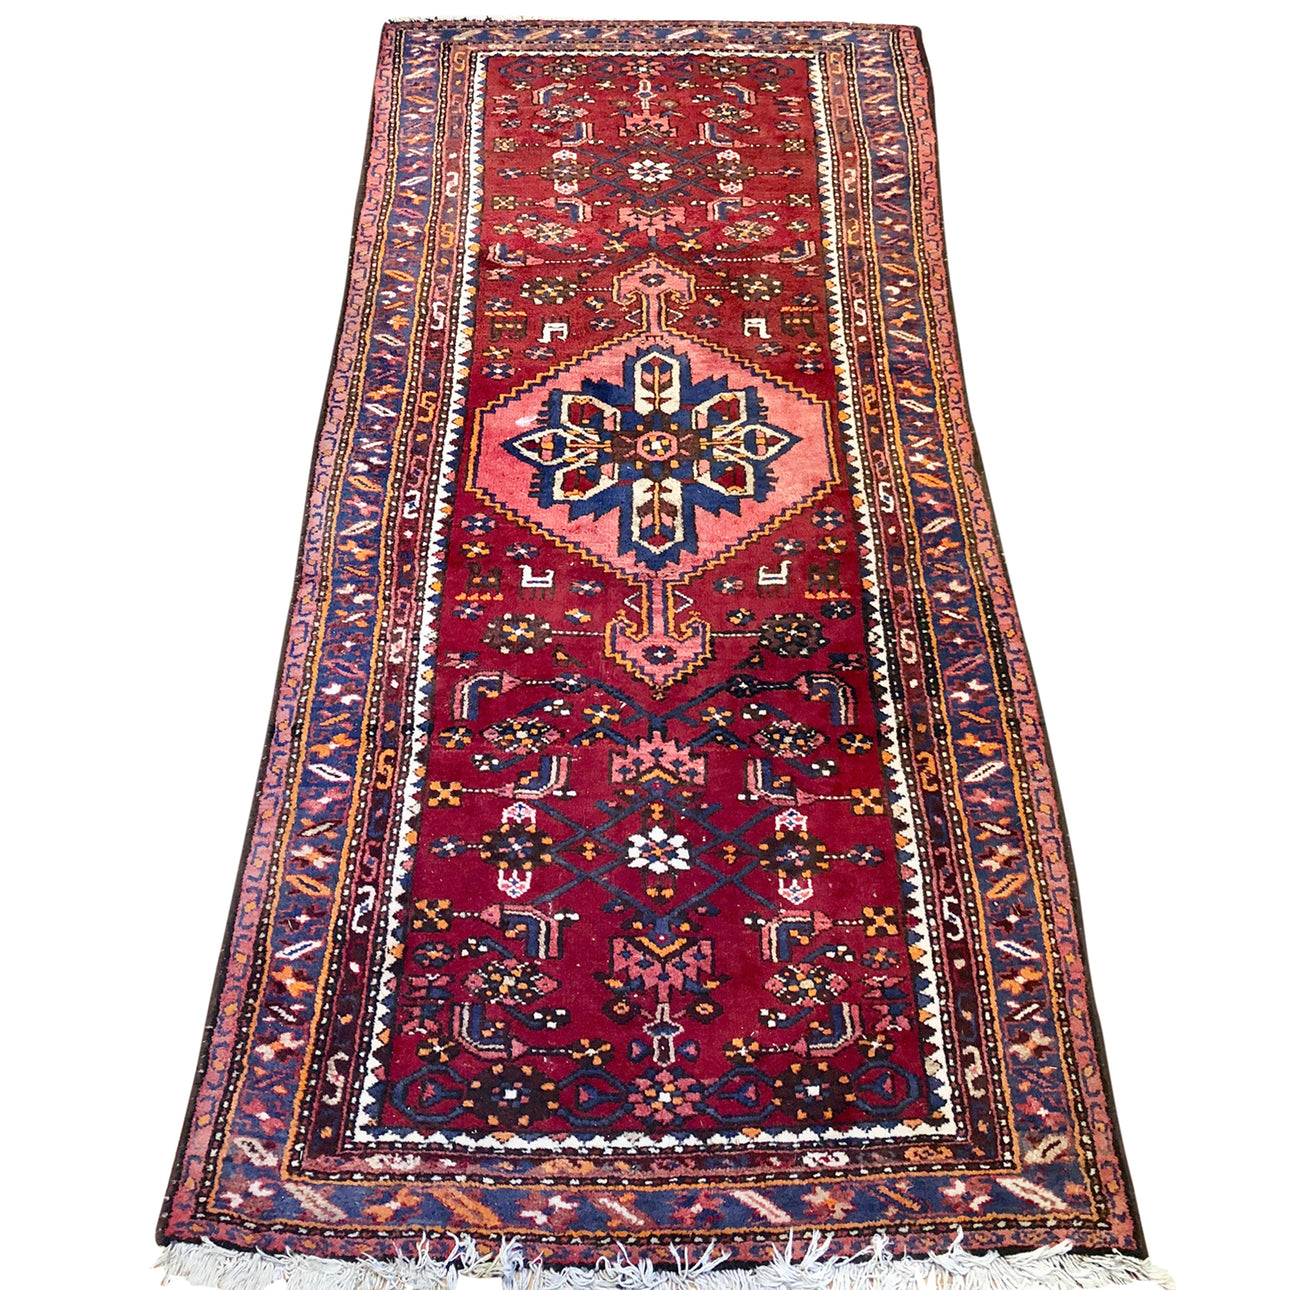 R75: Vintage Handmade Wool Area Rug Most Likely from a Tribal Region 3'4